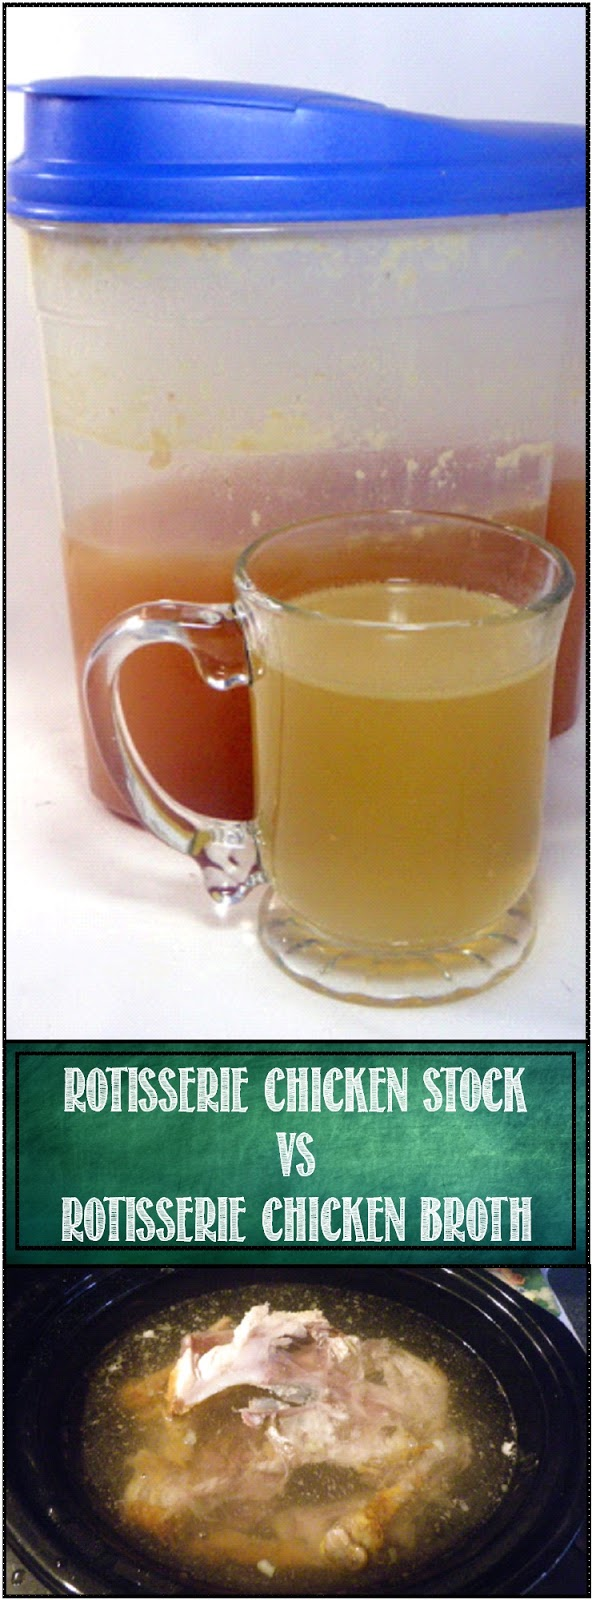 52 Ways to Cook: Rotisserie Chicken Stock vs. Rotisserie ...